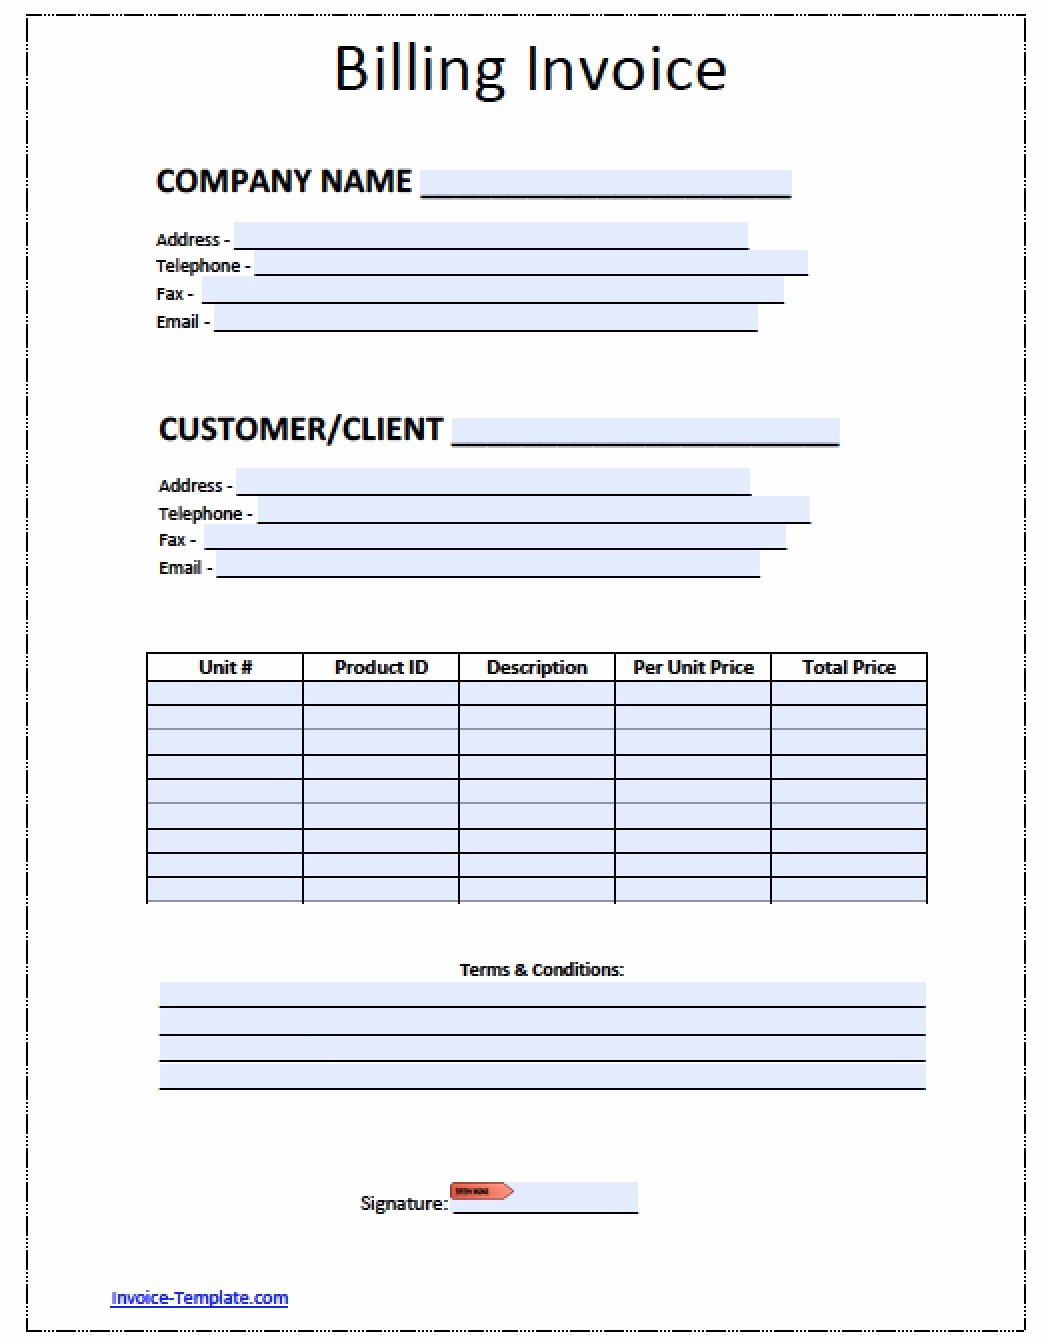 Blank Invoice Template Pdf Lovely Blank Invoice Template